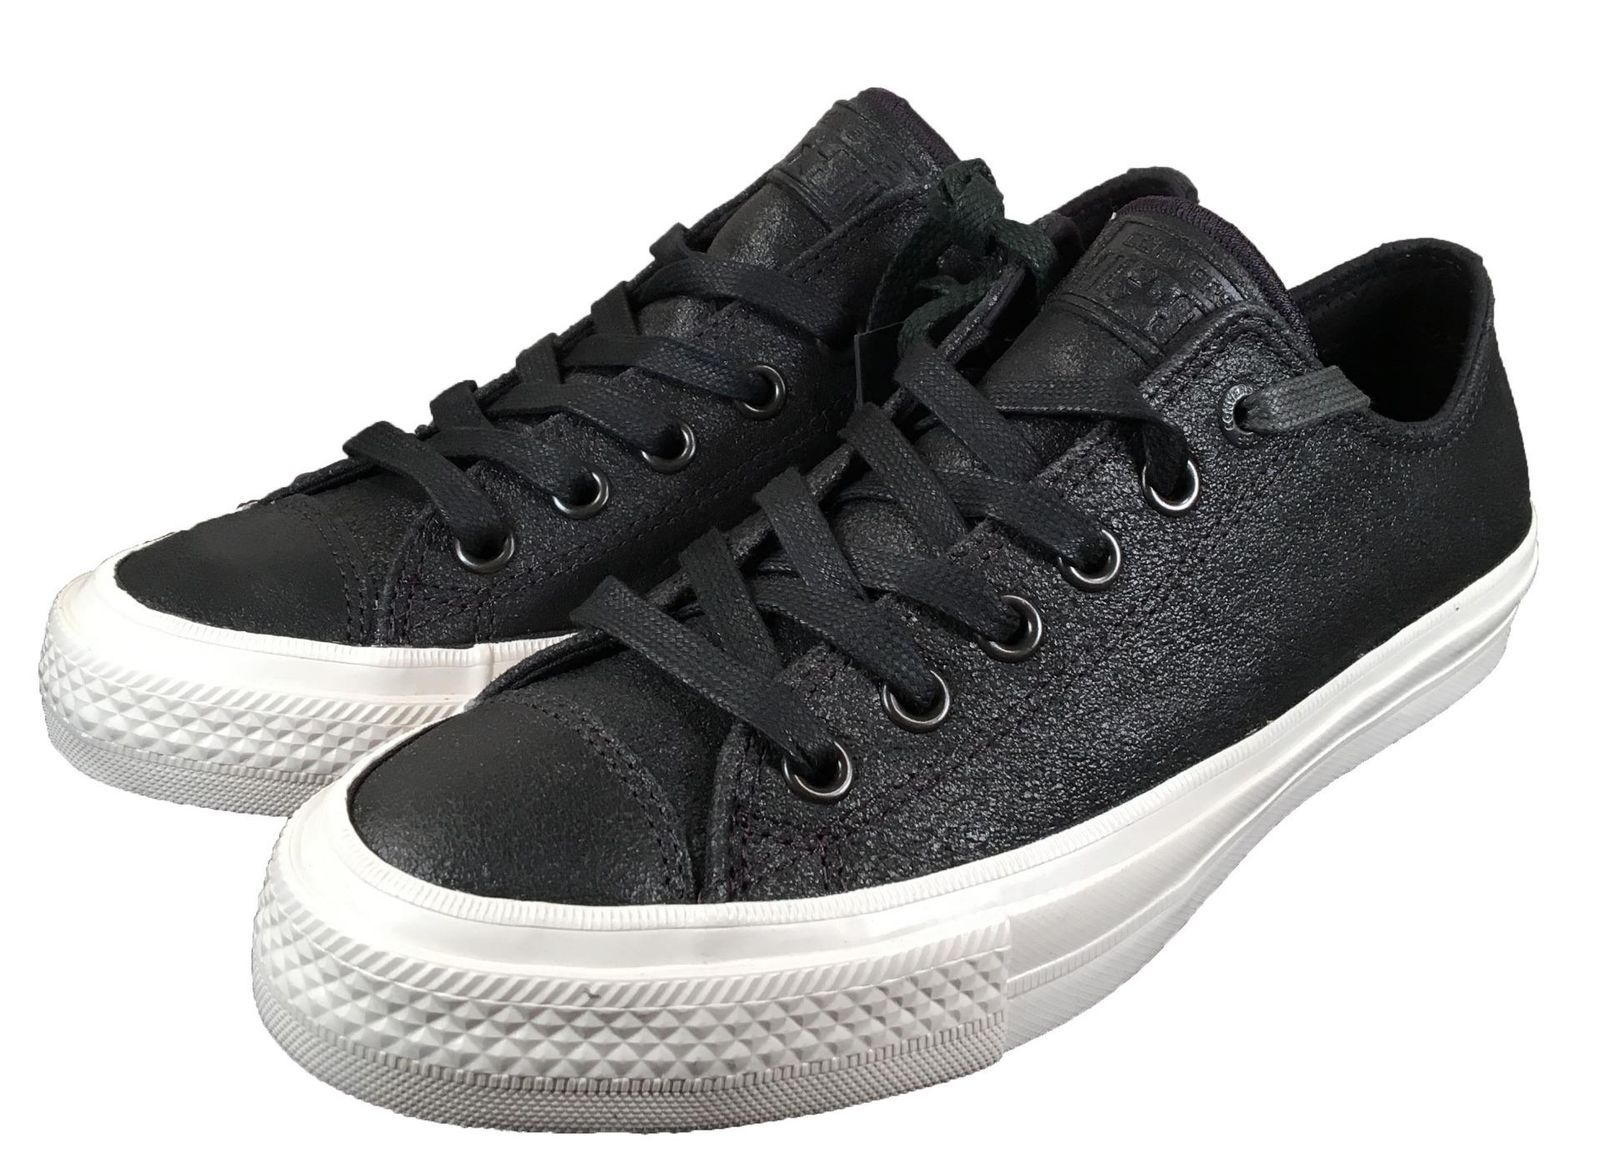 ec81476fc9c6 Converse Chuck II by John Varvatos CTAS OX and 16 similar items